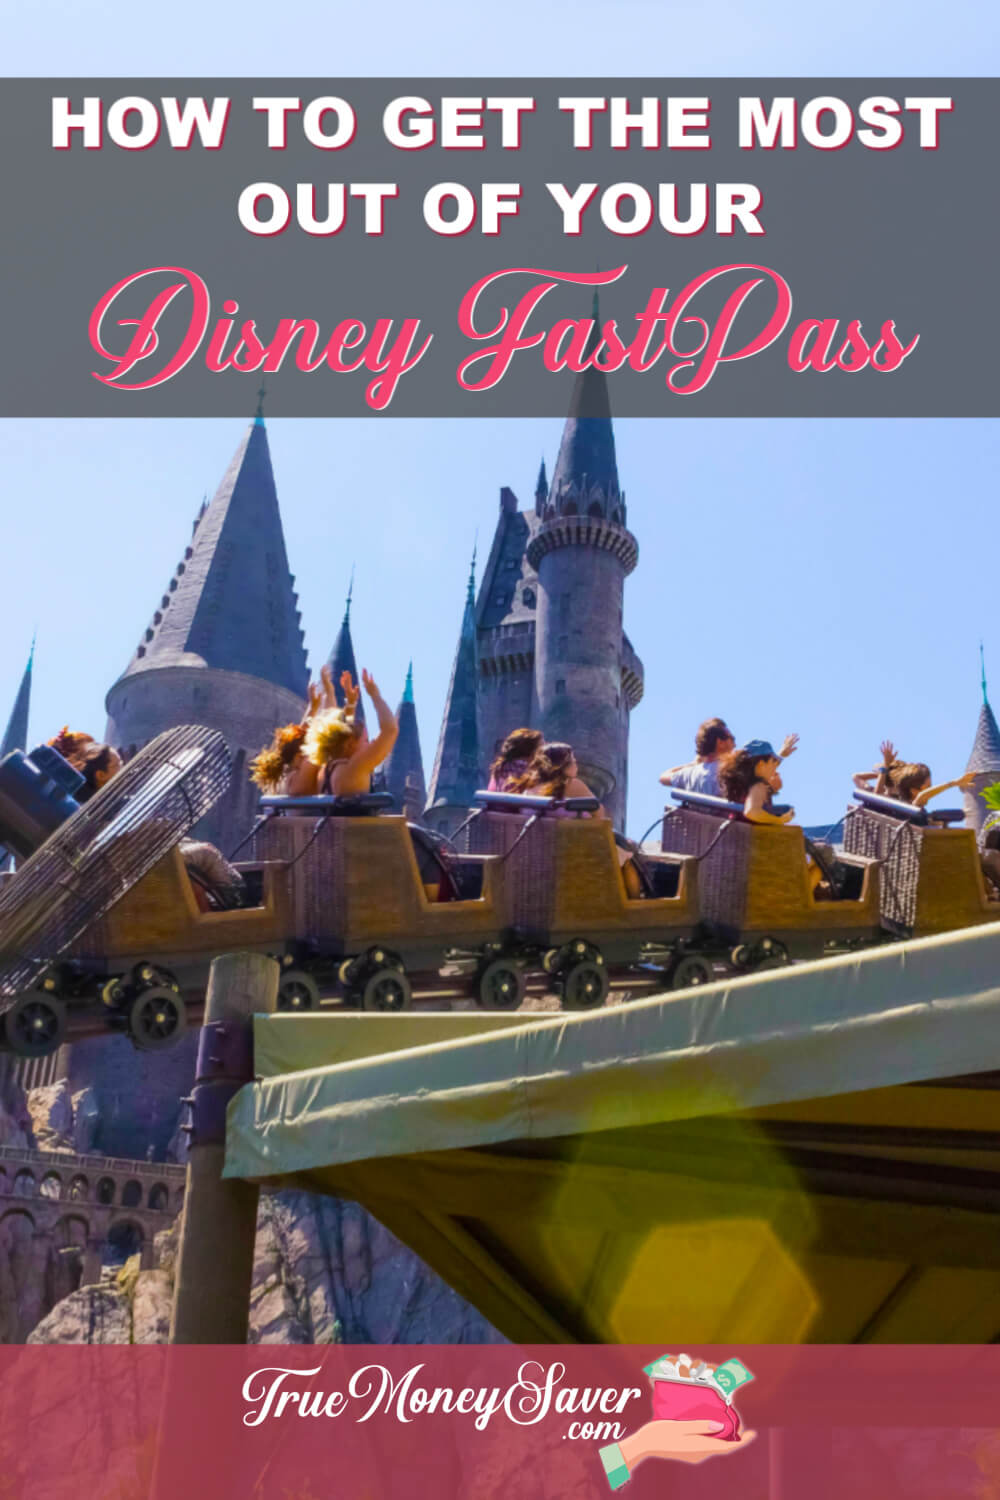 Heading to Disney soon? Don\'t wait to maximize your Disney Fastpasses with these important tips! #truecouponing #disney #familyvacation #fastpass #disneyworld #familyvacation #familyvacations #vacation #familytime